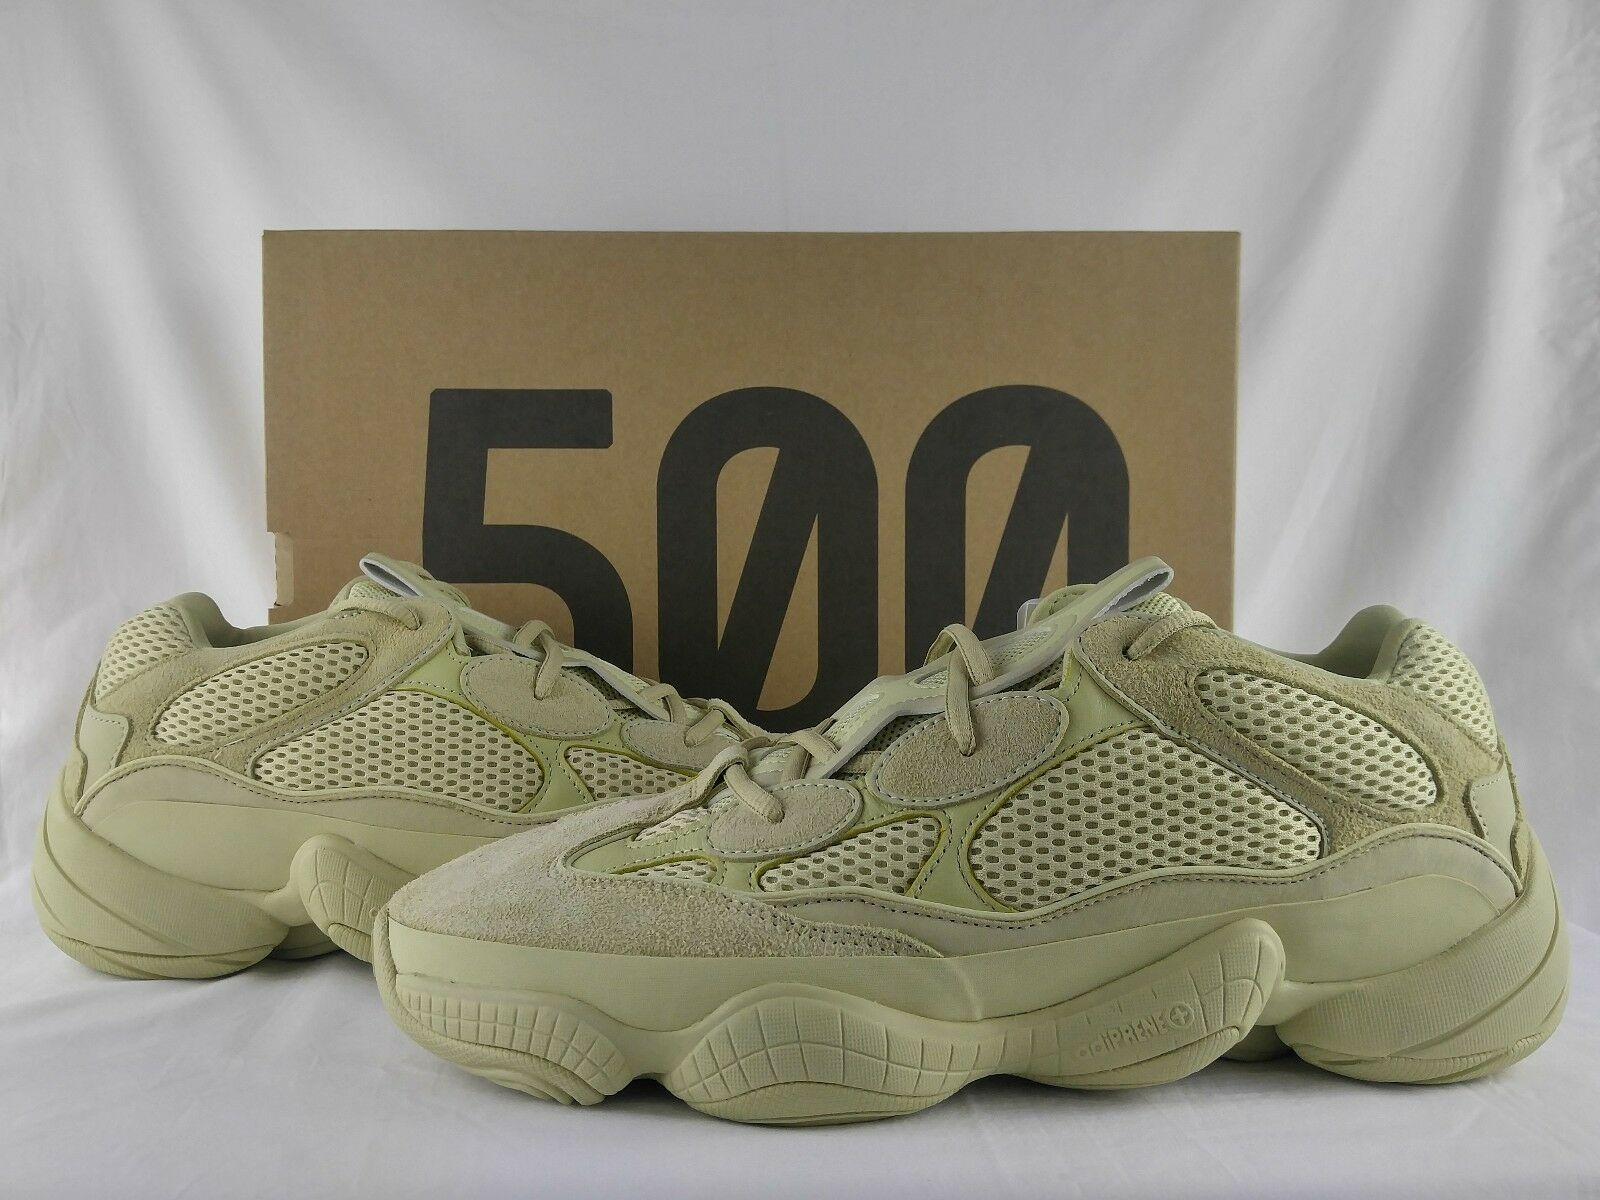 74174cc4a Limited Ed Shoes adidas Yeezy 500 Super Moon Yellow Desert Db2966 ...